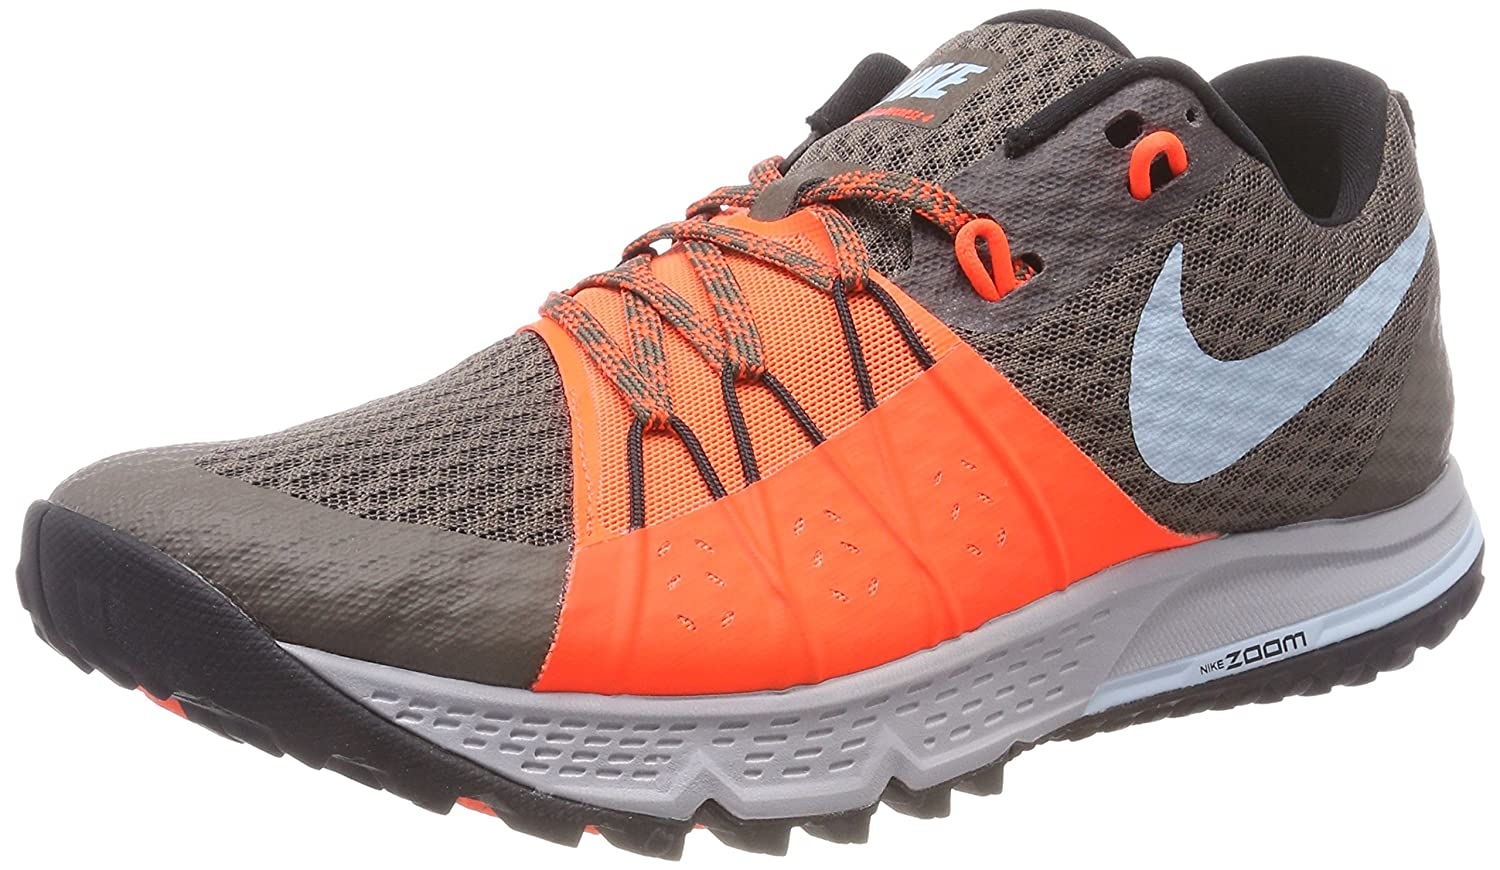 Nike Air Zoom Wildhorse 4, Zapatillas de Running para Asfalto para Hombre 44.5 EU|Marrón (Ridgerock/Ocean Bliss-total Crimson 200)